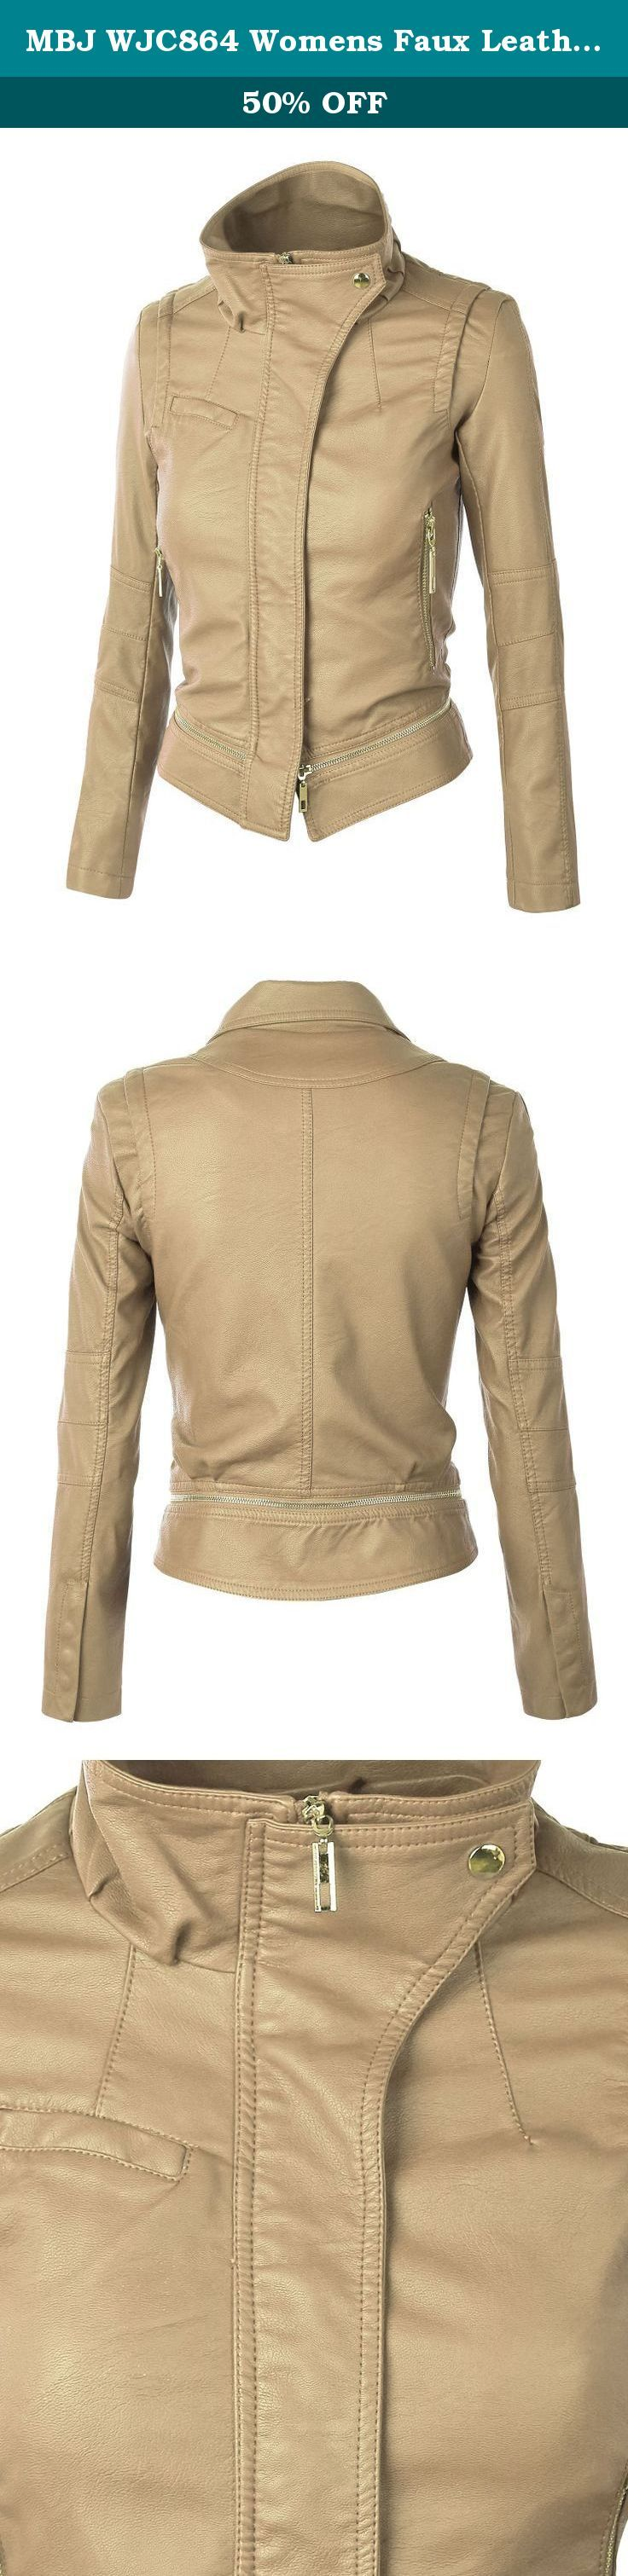 MBJ WJC864 Womens Faux Leather Mock Collar Zip Up Biker Jacket L KHAKI. The 2 for one length motocycle style jacket. A detachable zippered bottom panel can be removed and turns into a crop jacket or keep it regular length. Made out of faux leather and jacket is fully lined. Featured a zippered front with a snap high -collar and zippered pockets. Wear it with everything.